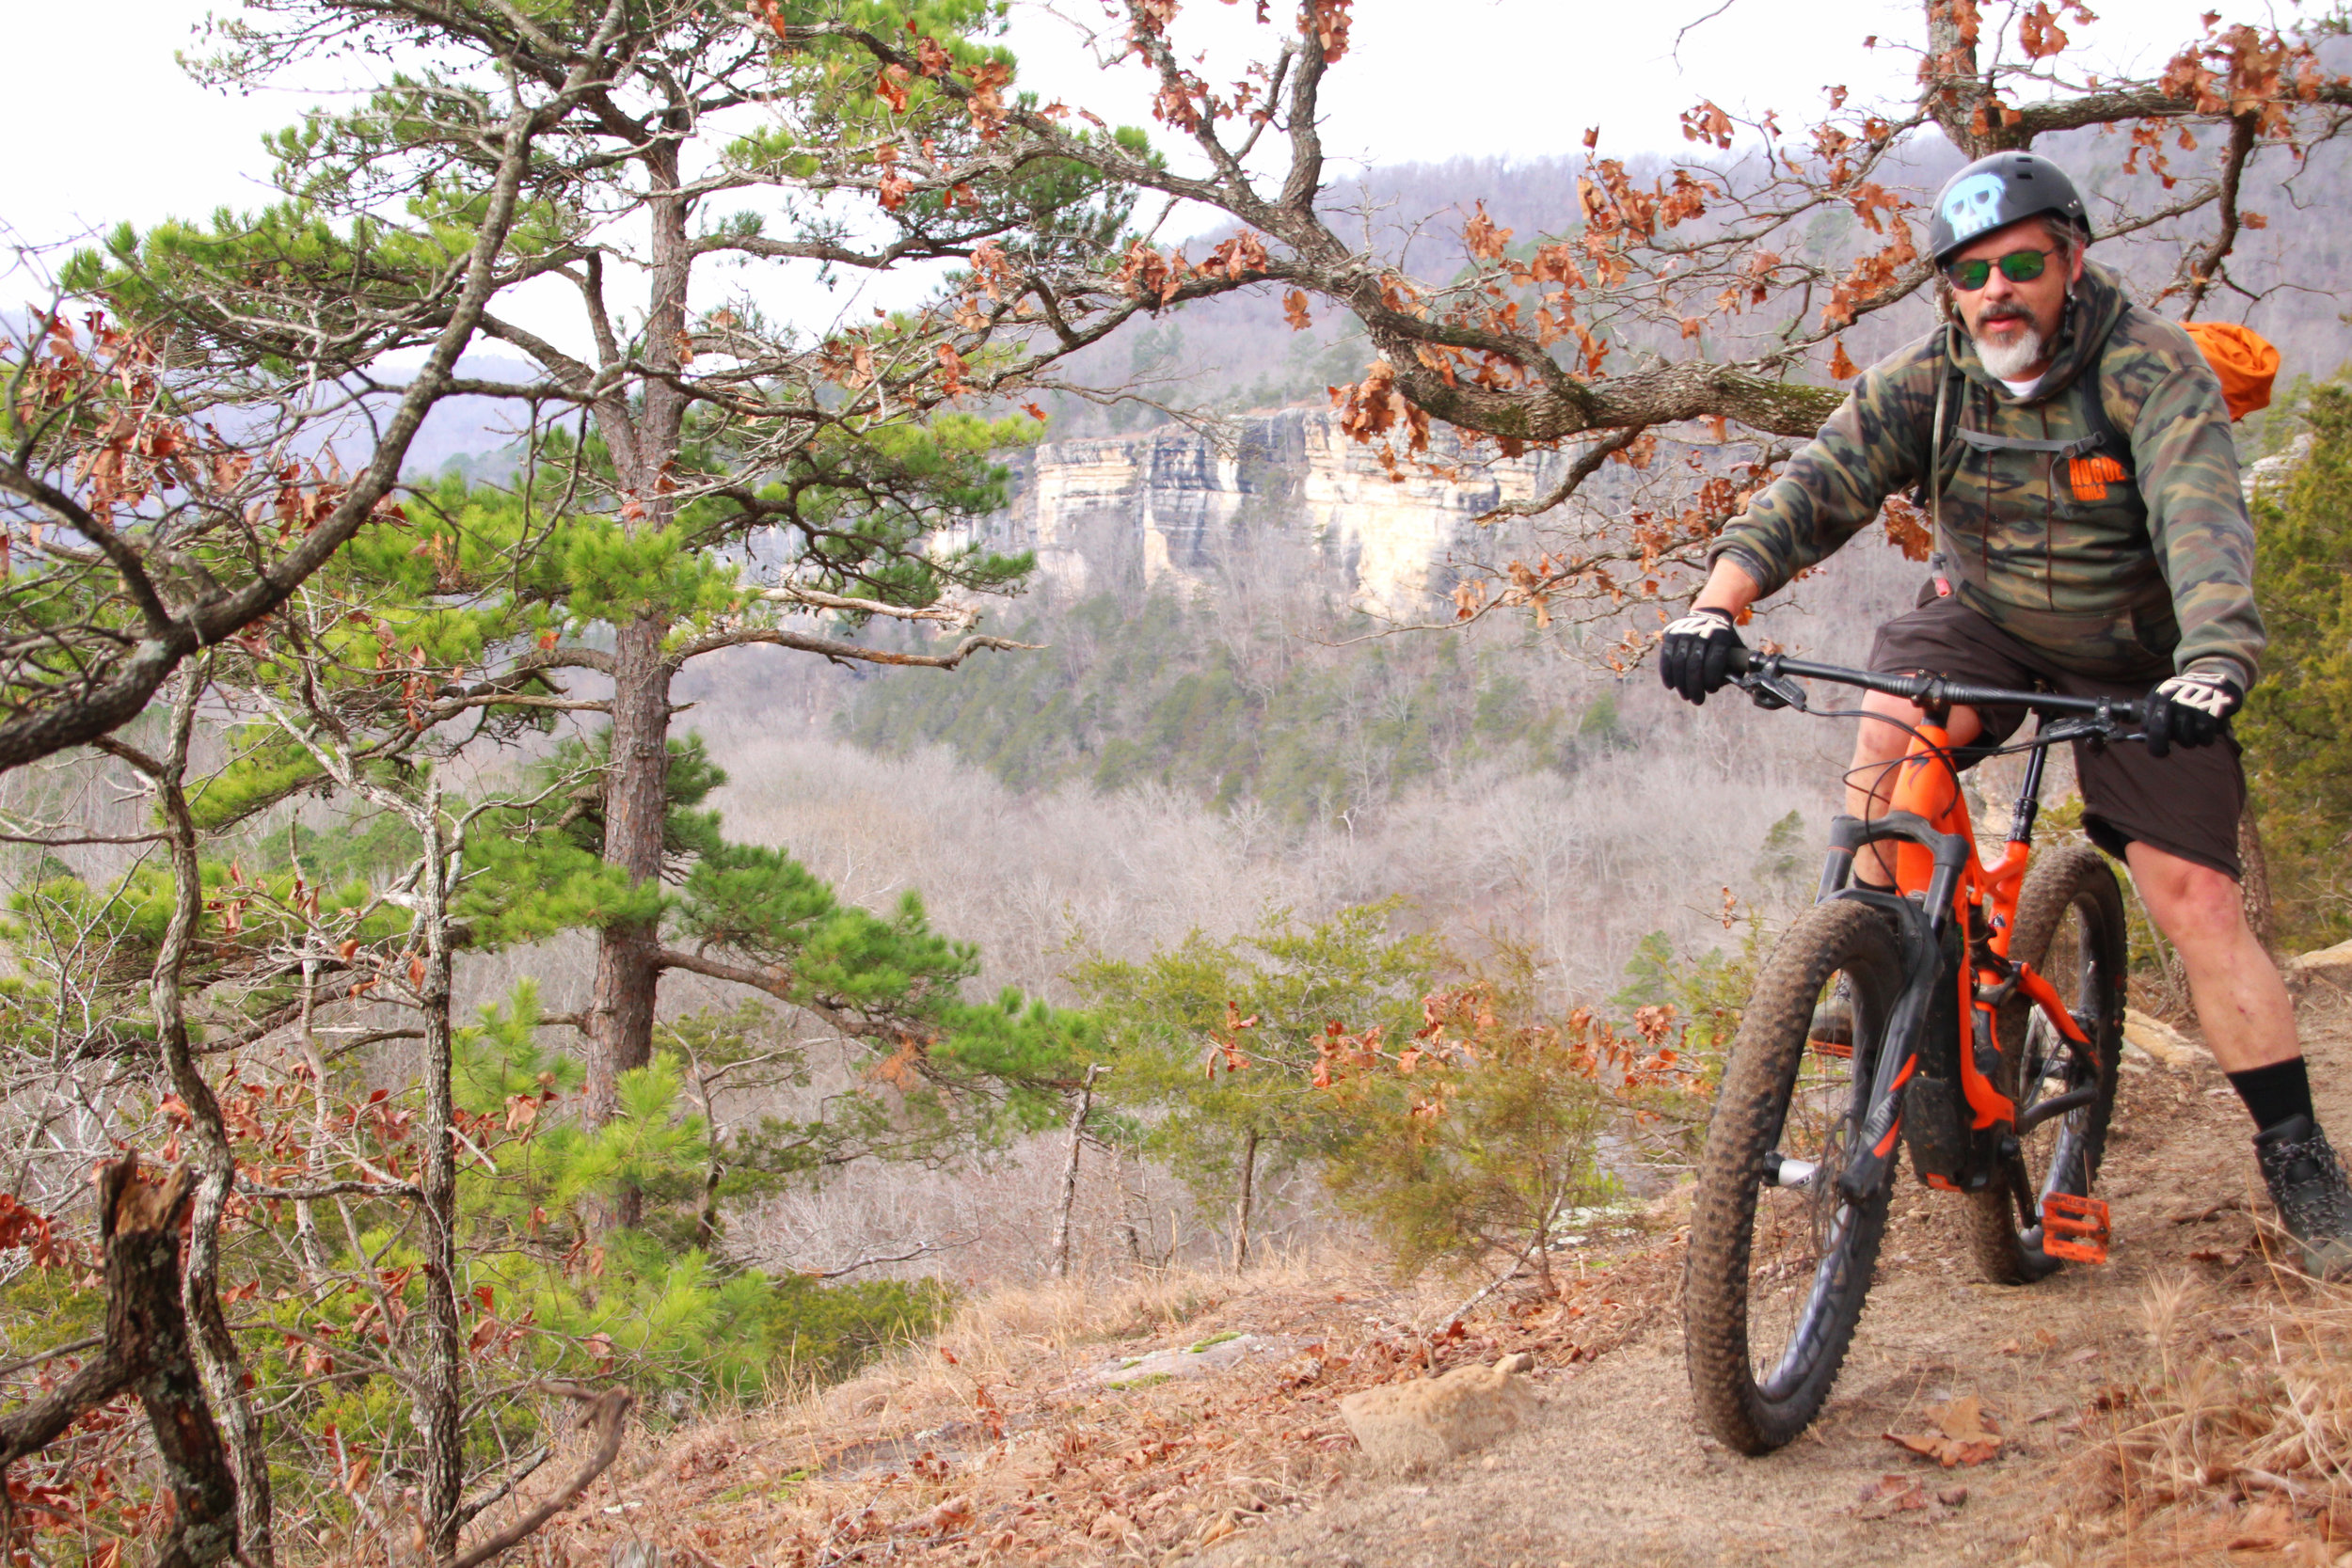 ENJOYING THE VIEW: Rogue Trails' founder/owner Phil Penny takes a break at an overlook on the Camp Orr Trail his company built in the Buffalo River valley.